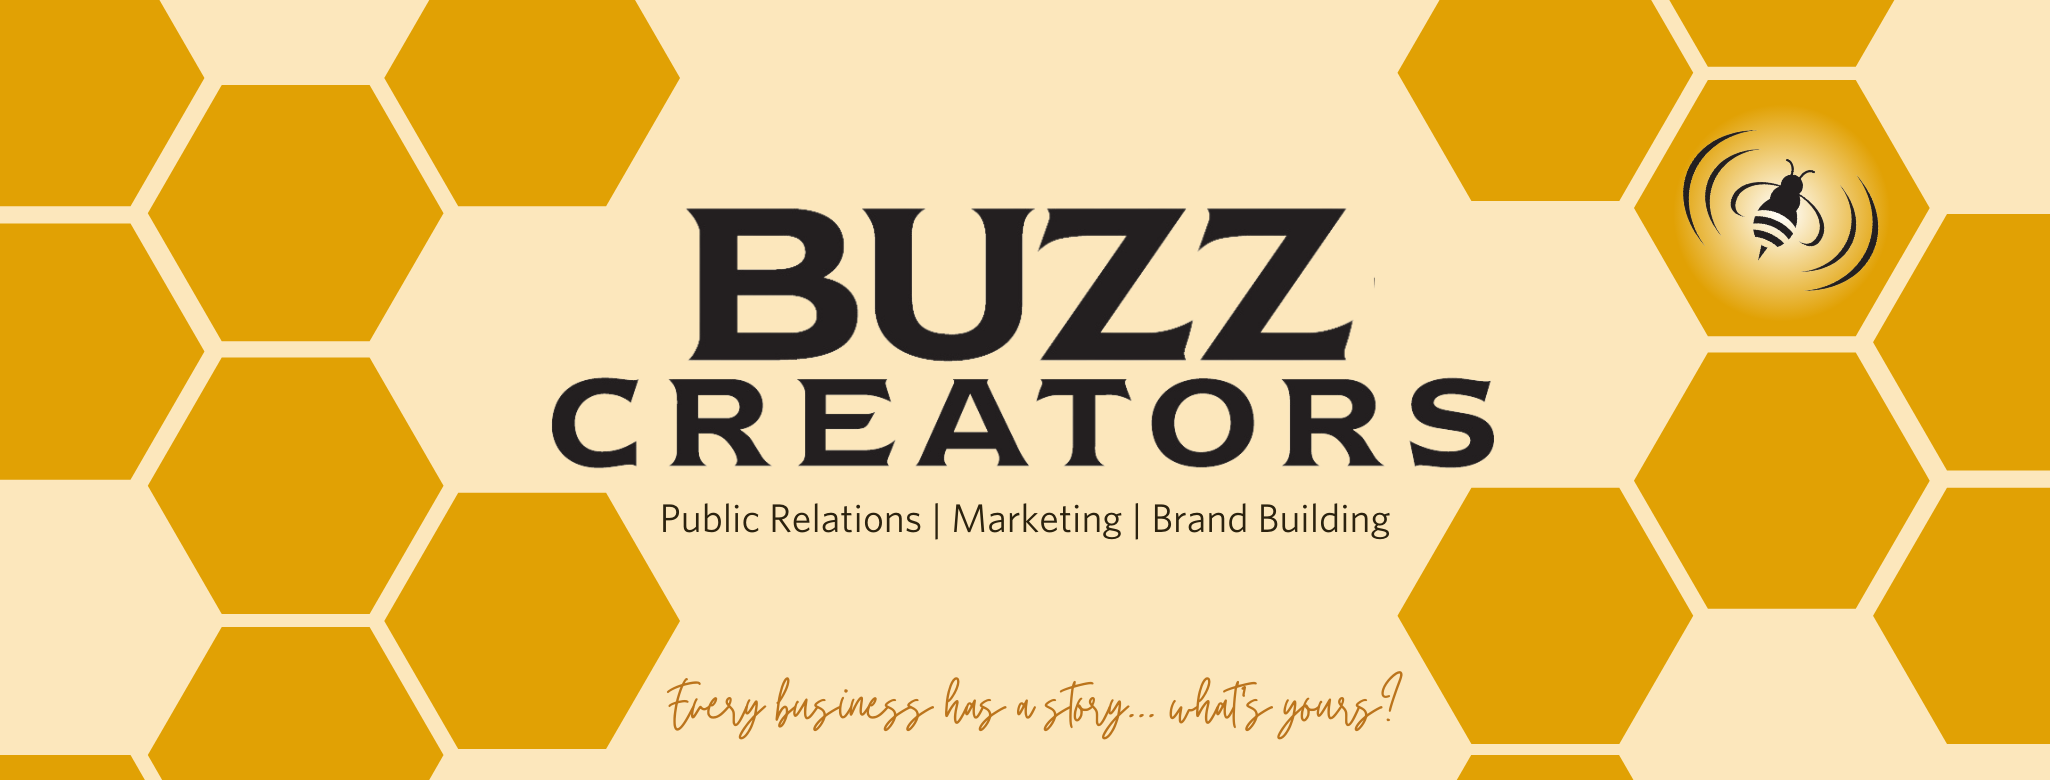 Buzz Creators PR & Marketing in NY